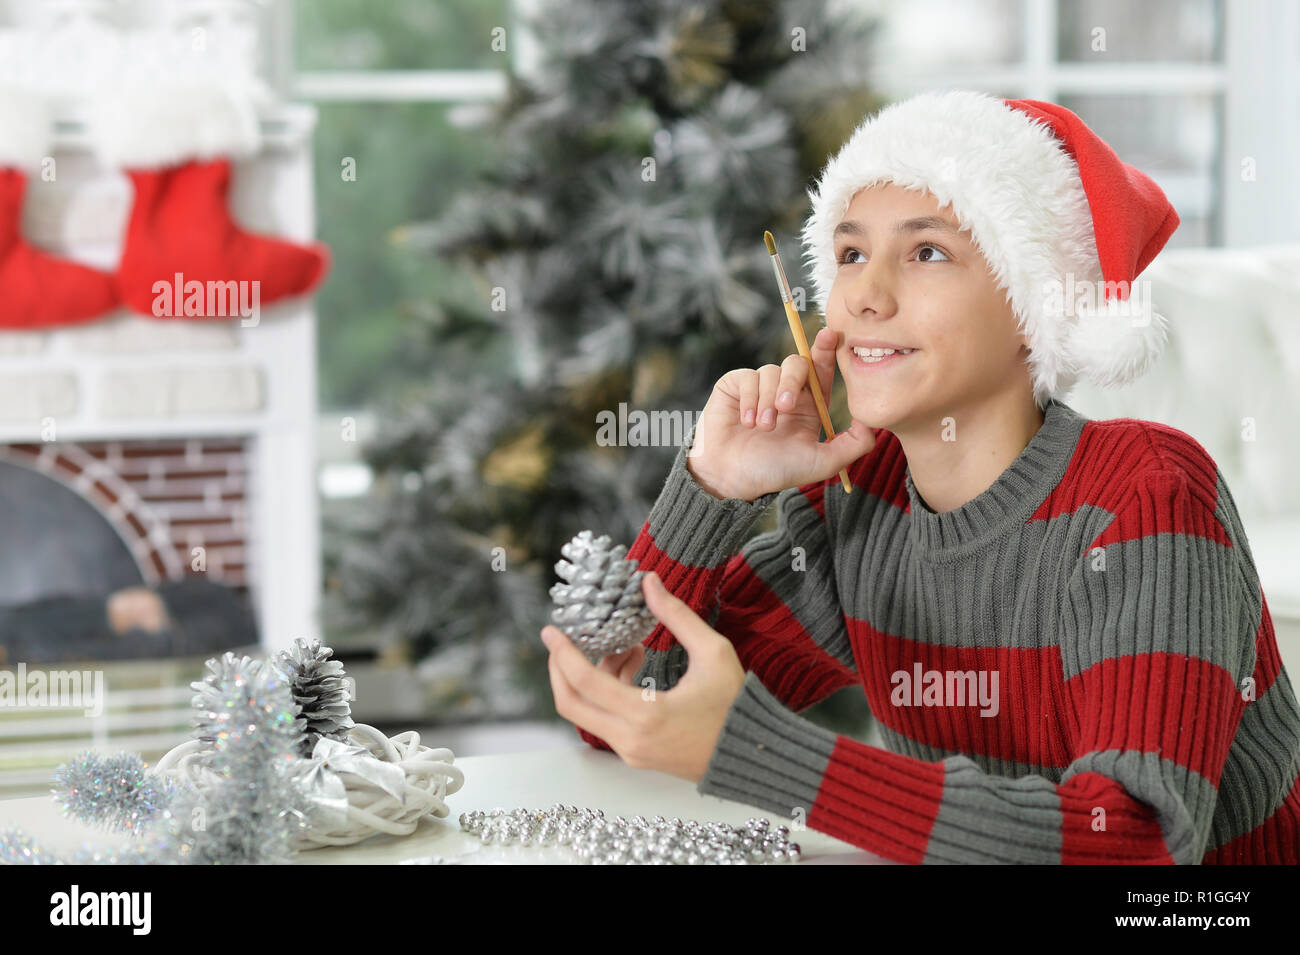 Teen Boy Christmas.Portrait Of Teen Boy Preparing For Christmas Stock Photo